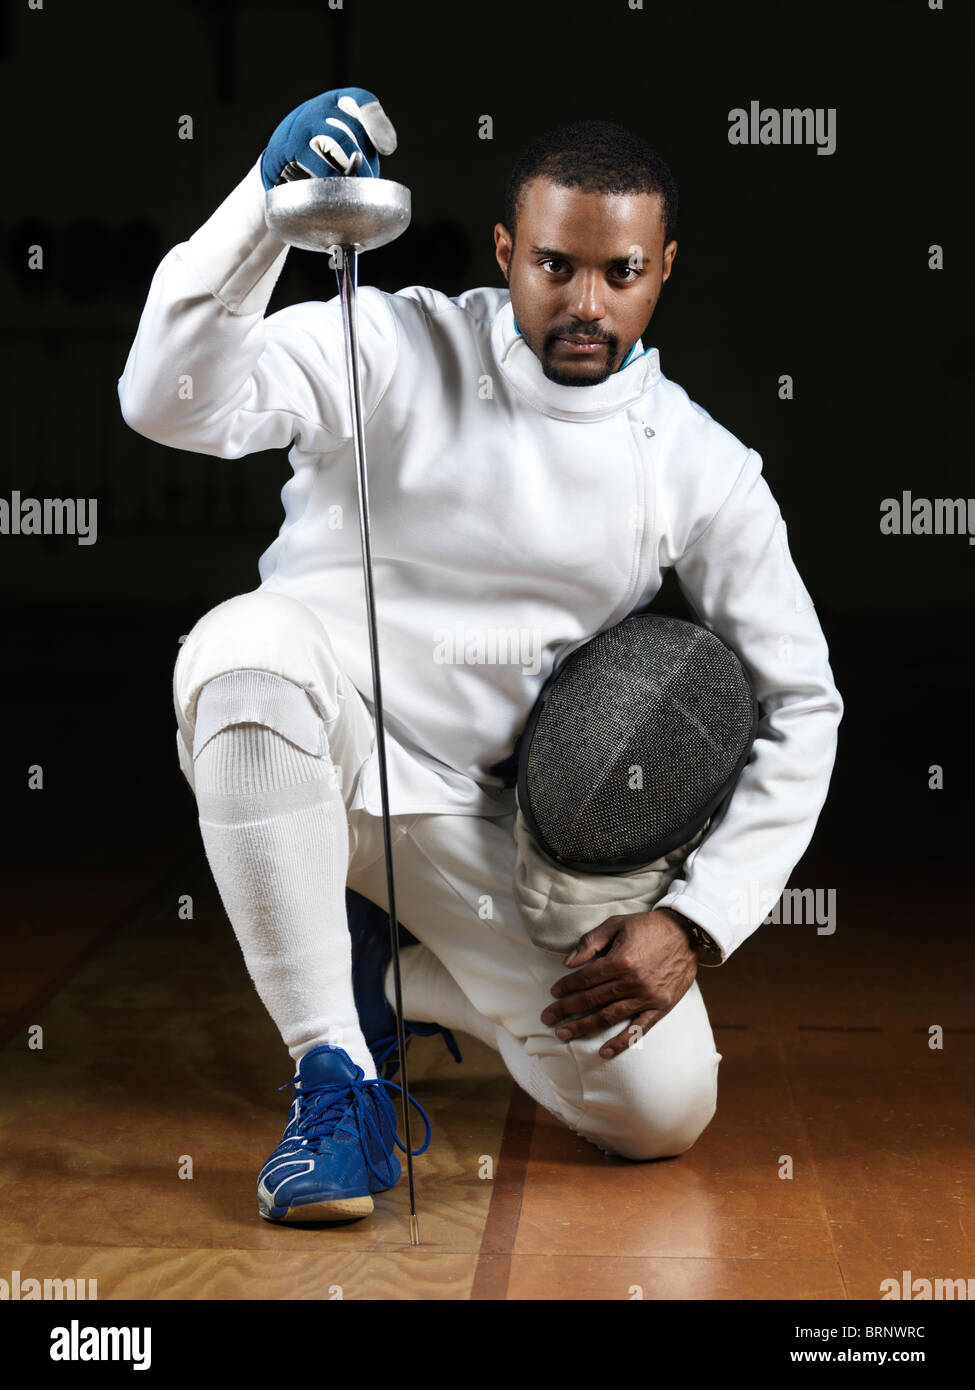 Portrait of a fencer wearing fencing uniform and holding an epee in a gym on black background - Stock Image